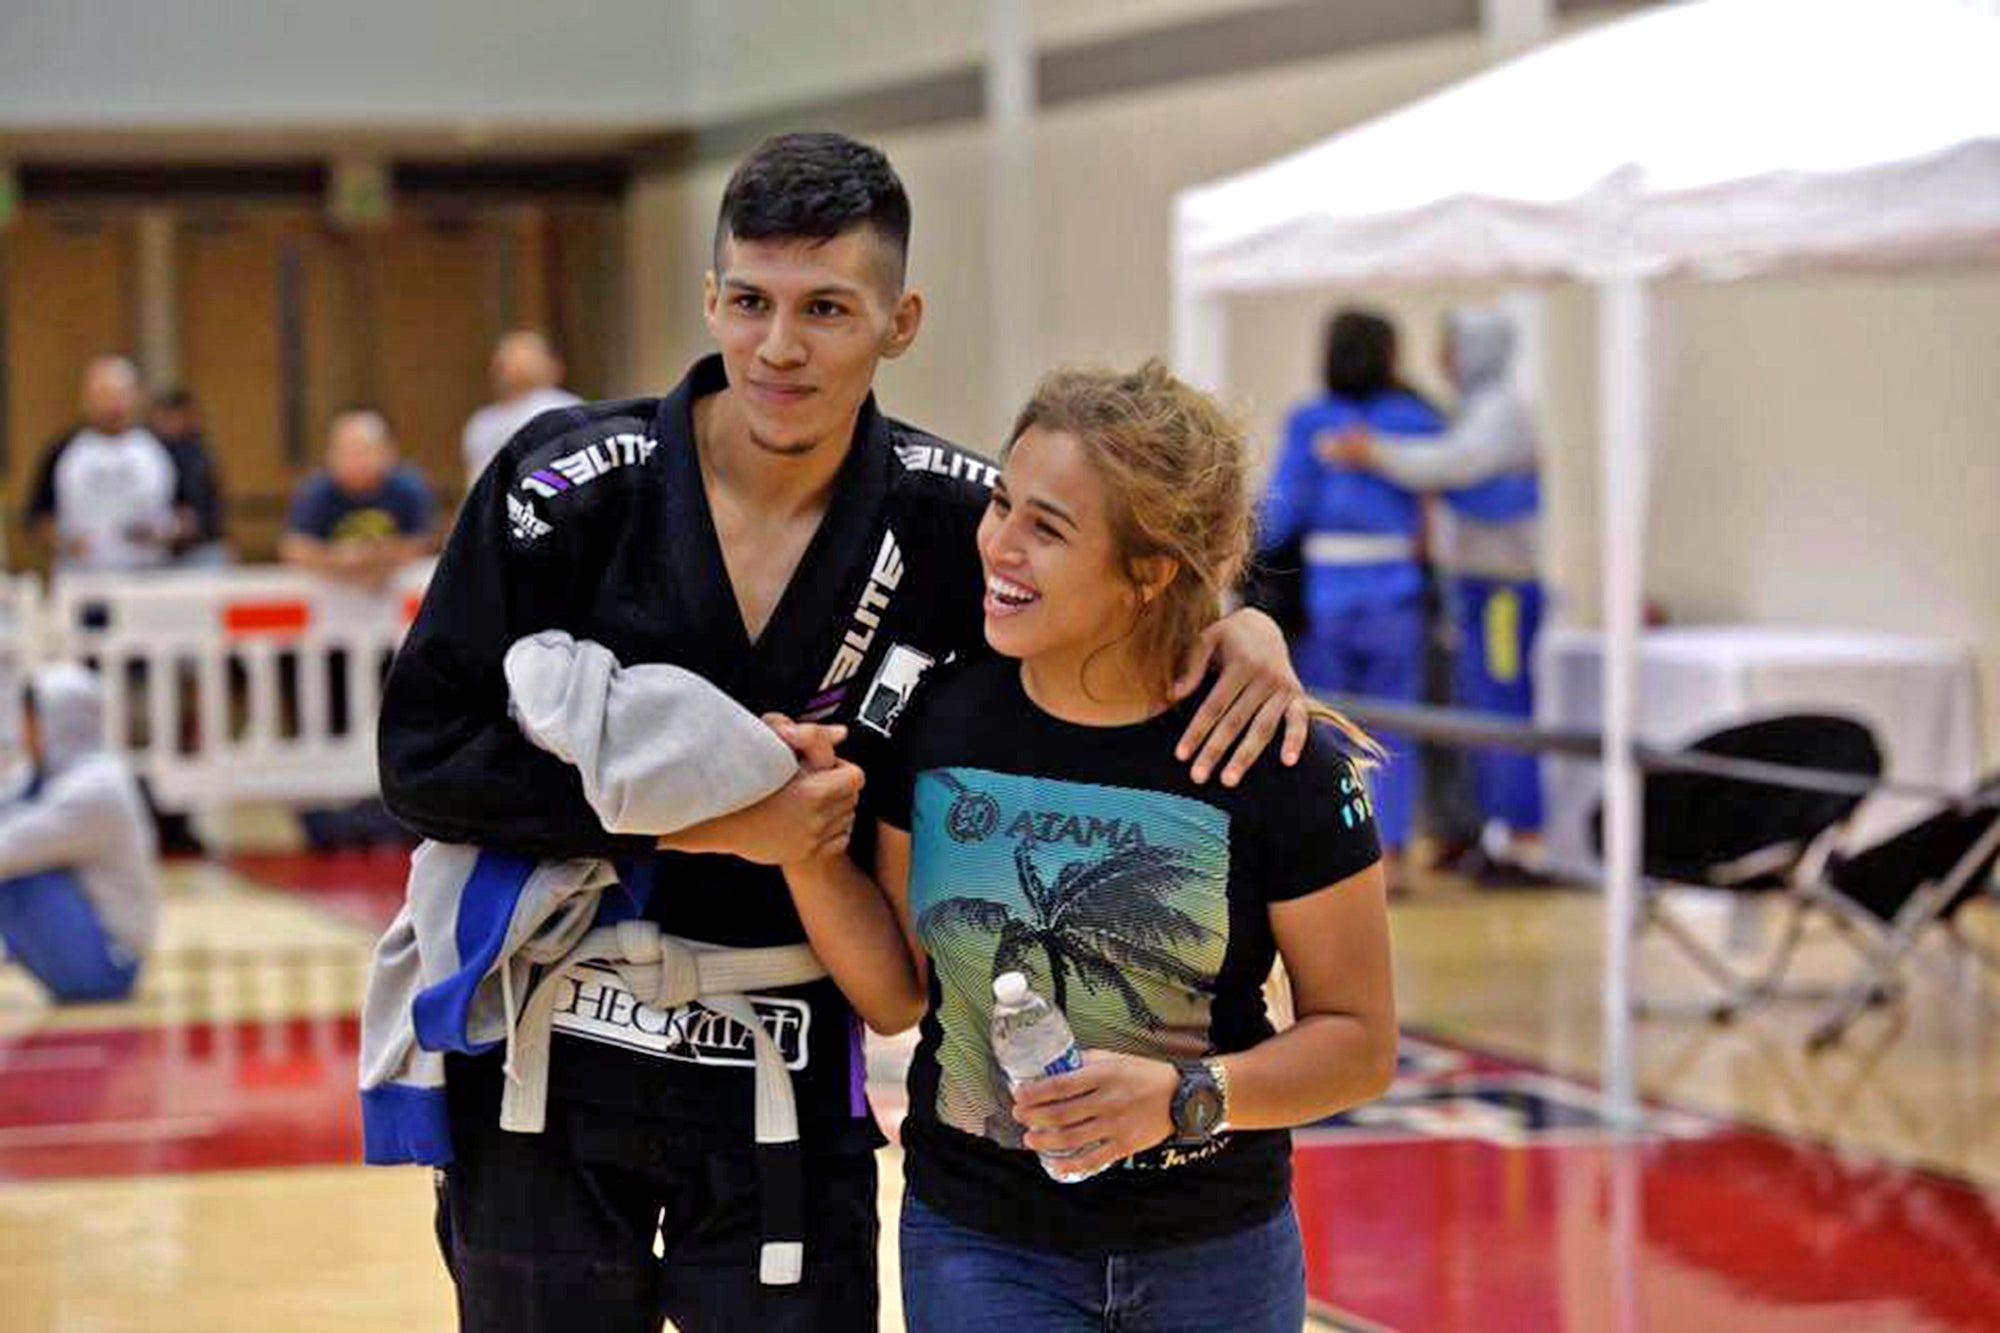 Elite Sports Team Elite Bjj Fighter Yves Luis Robles Image6